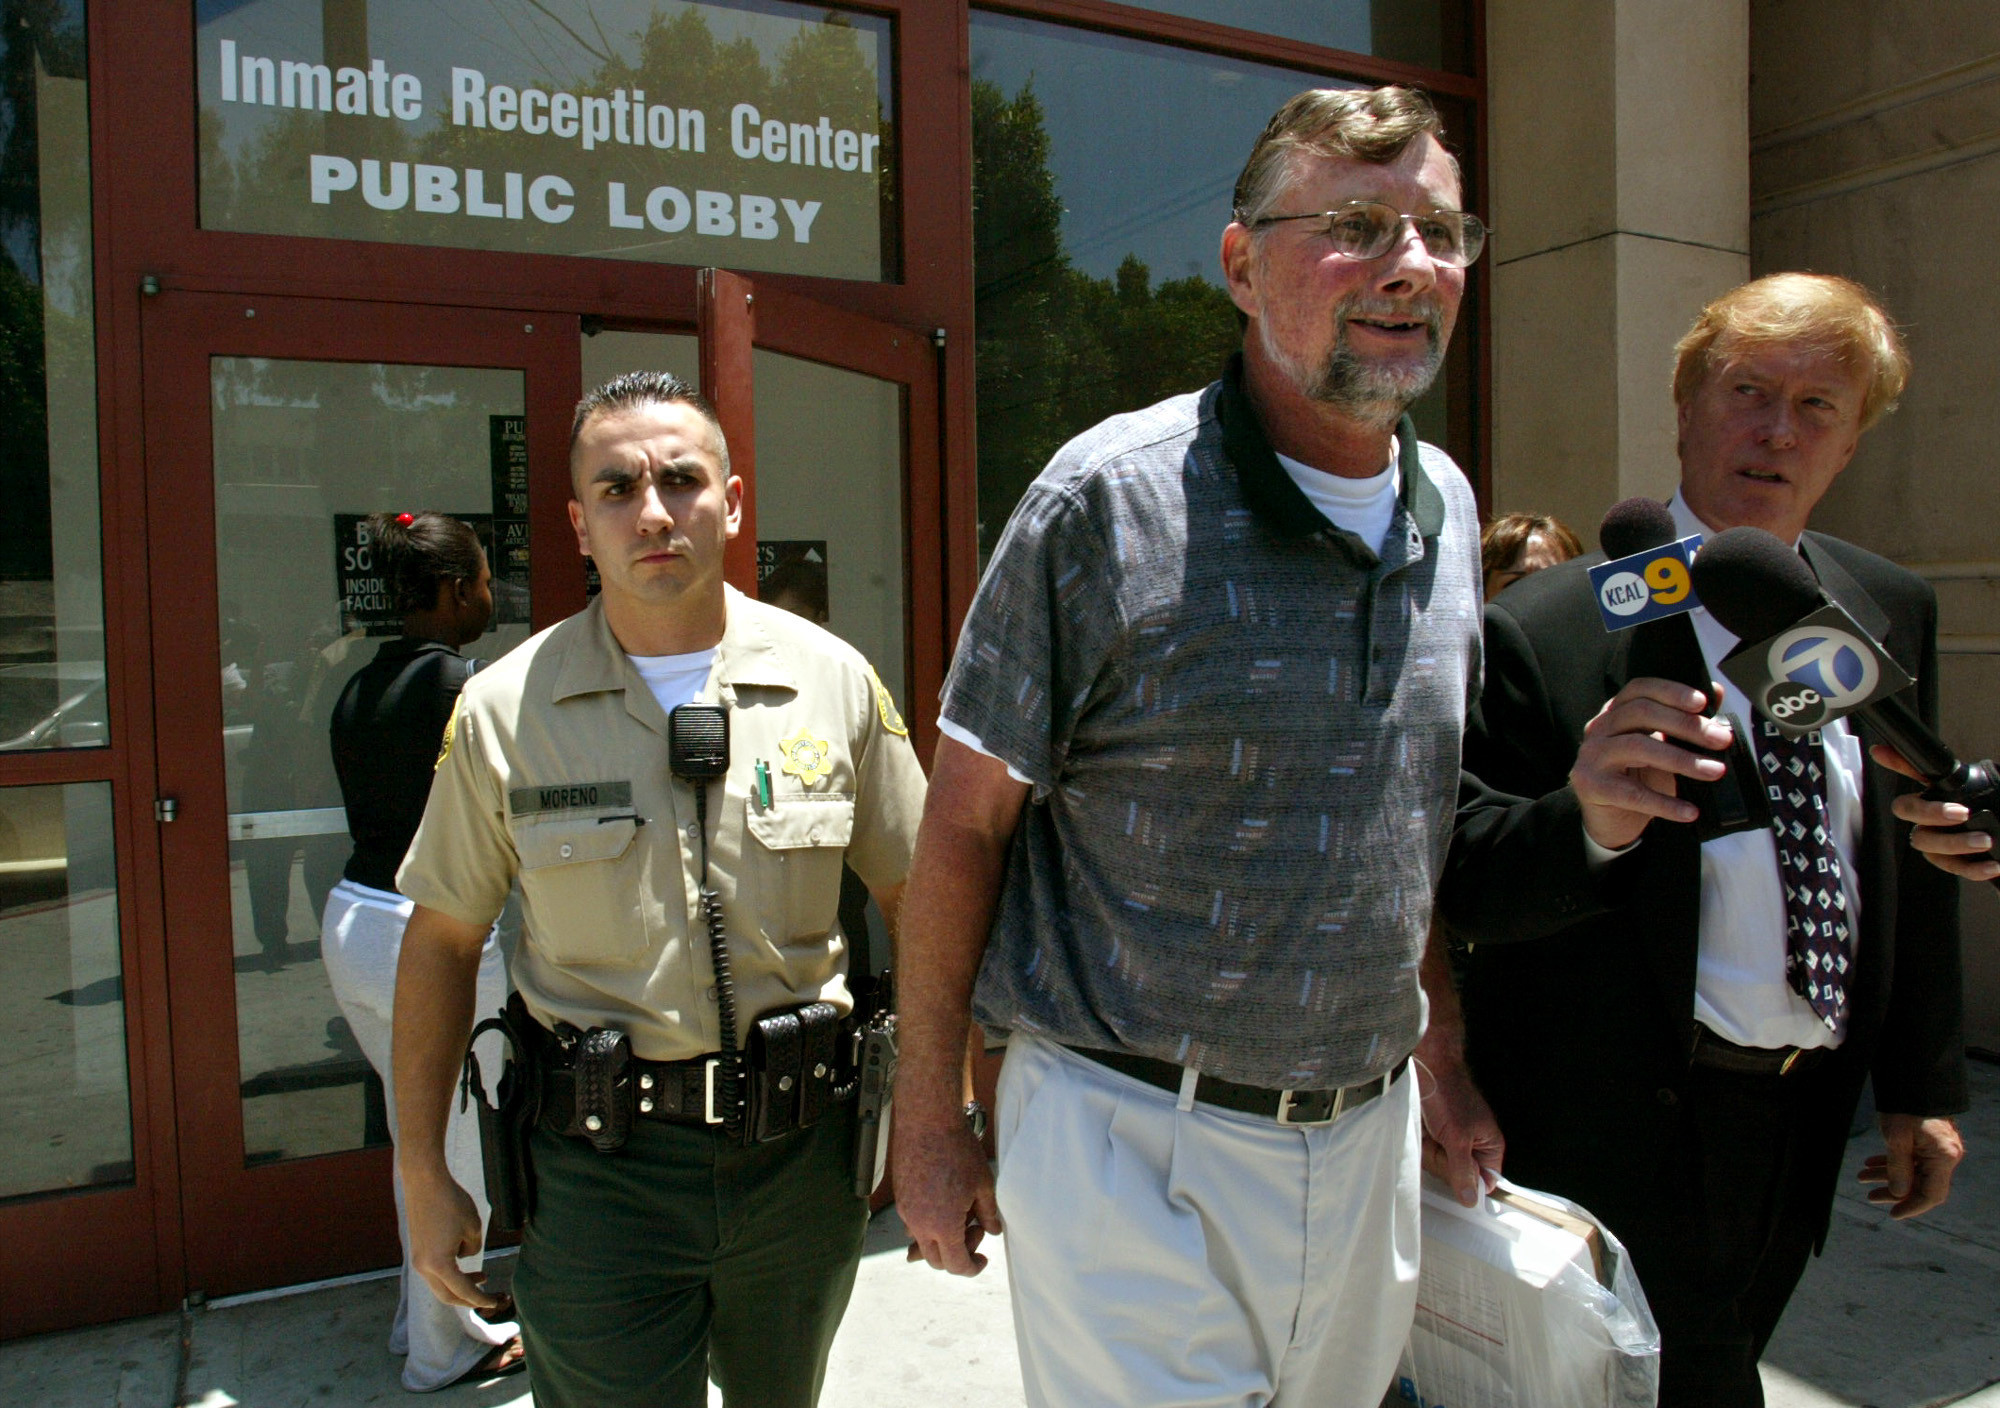 Retired priest Michael Wempe, 63, after a judge ordered his release on his own recognizance following a U.S. Supreme Court ruling that California violated the Constitution when it passed a law to revive criminal prosecutions in longago sexualabuse cases.